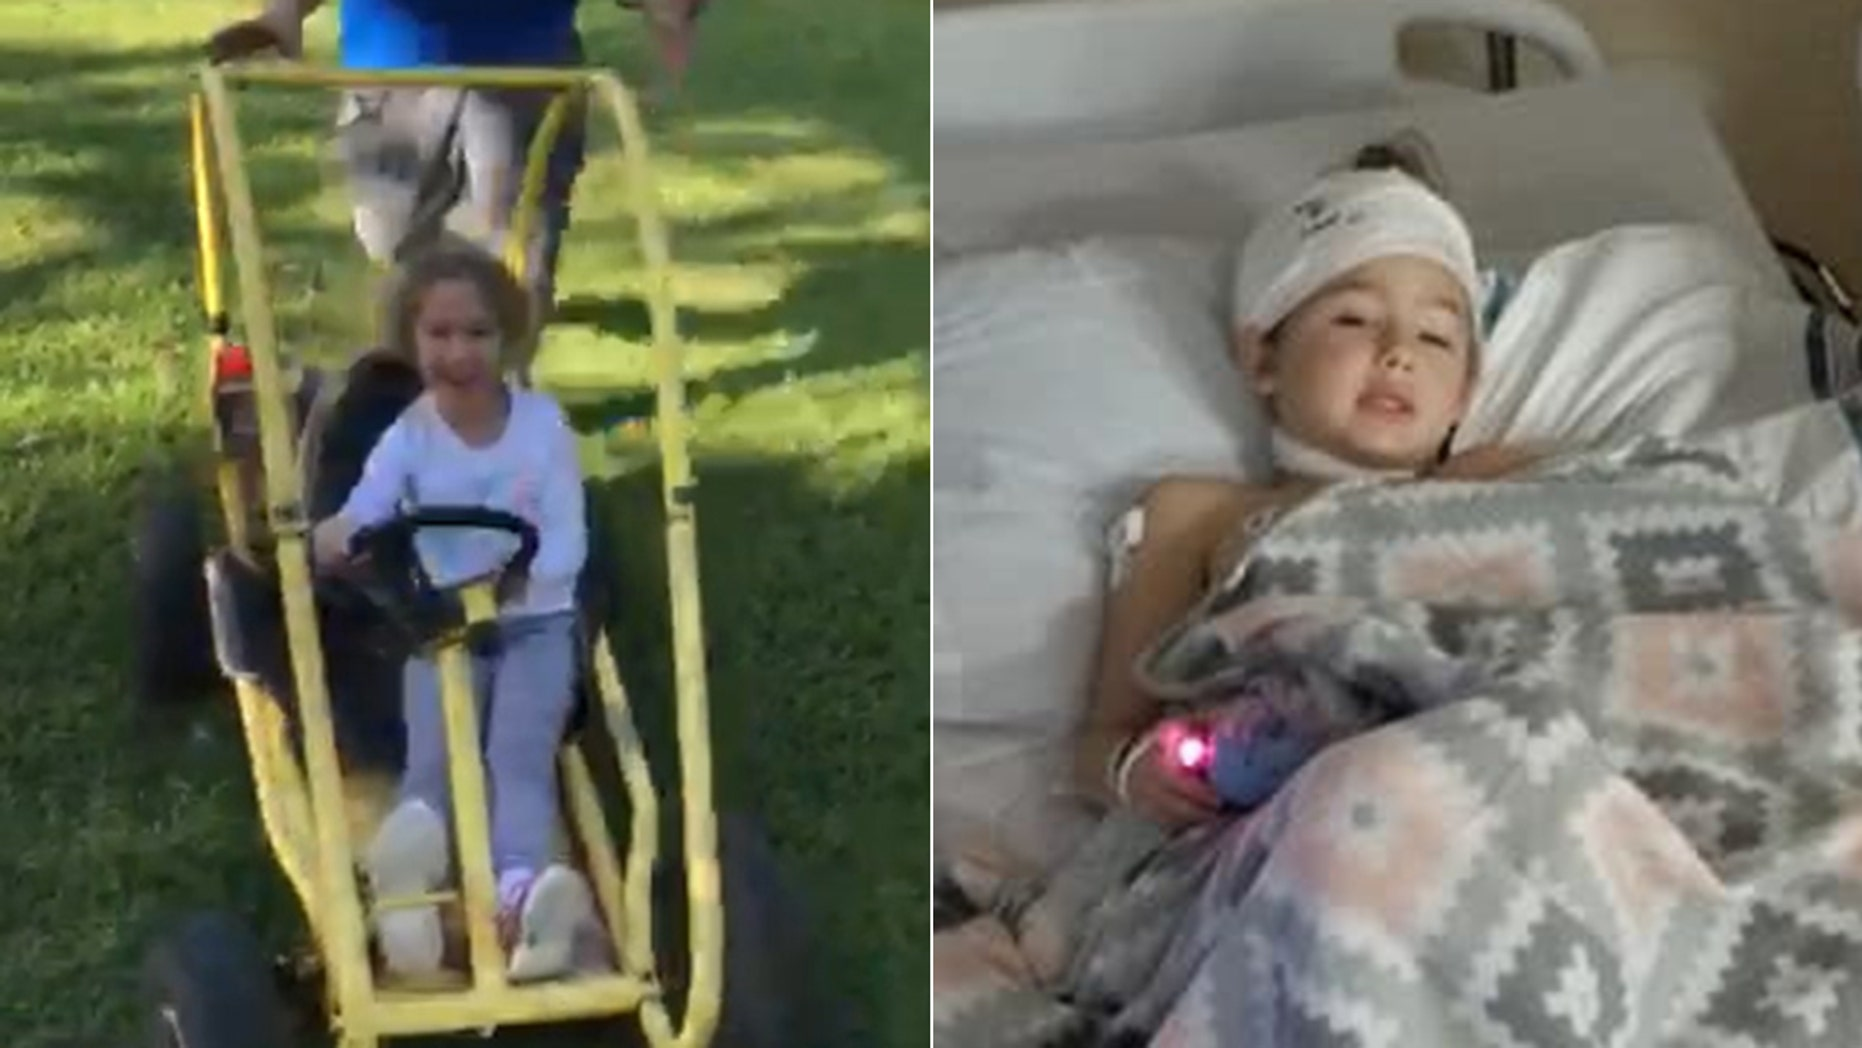 Lani Use, pictured left moments before her horrific accident, and right after her emergency surgery, had been riding in the go-kart at a family party when her hair got stuck in the vehicle's motor.